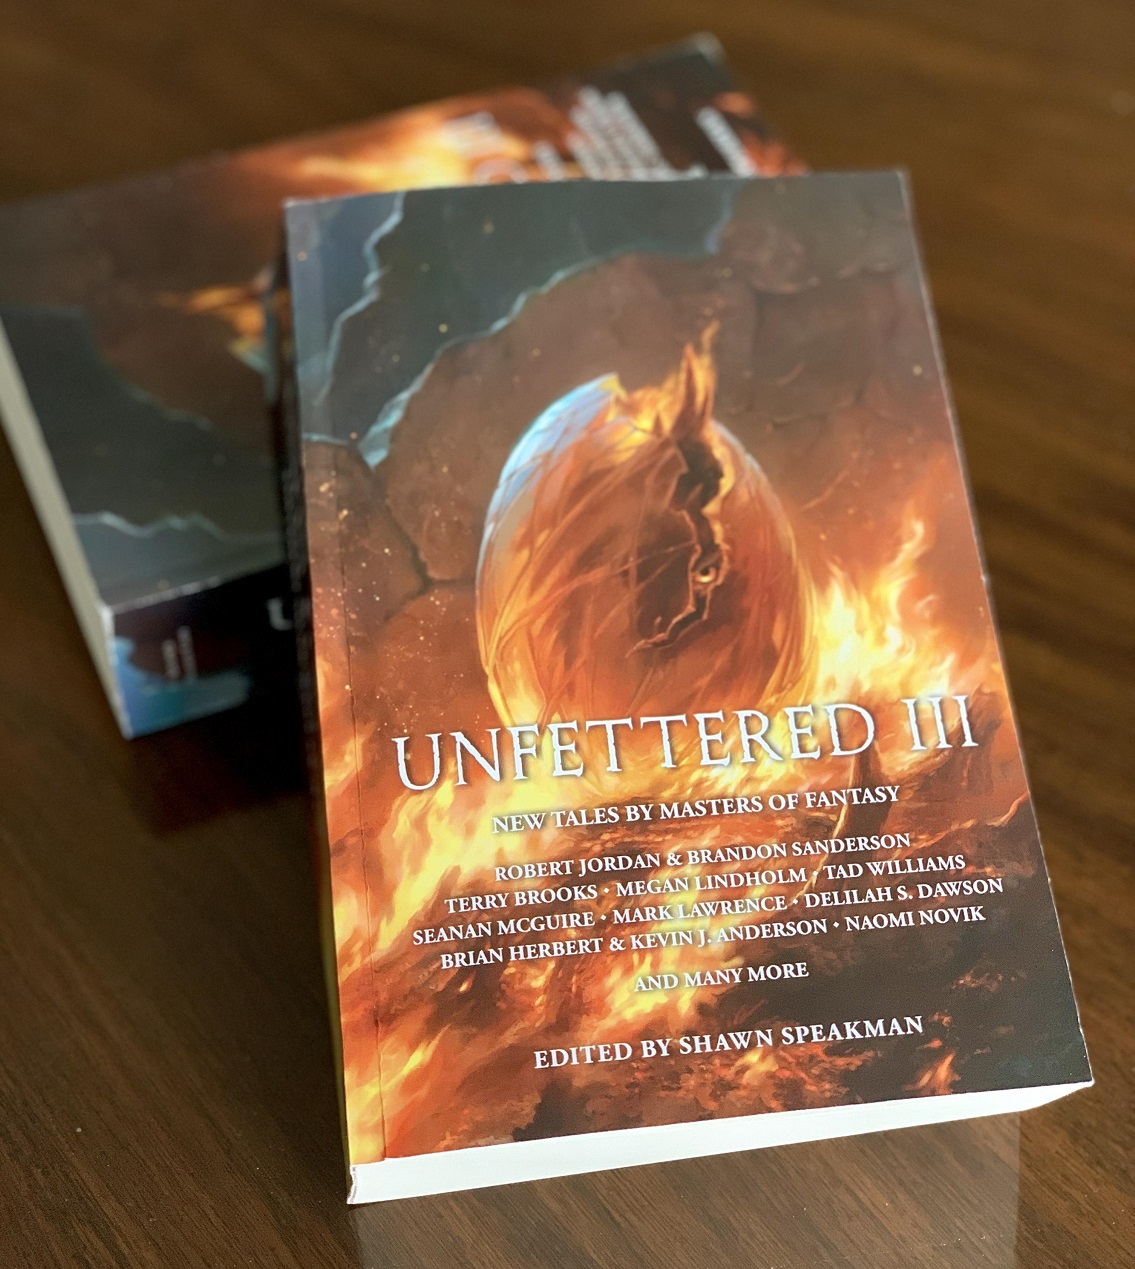 Unfettered III Audiobook Free Download and Listen